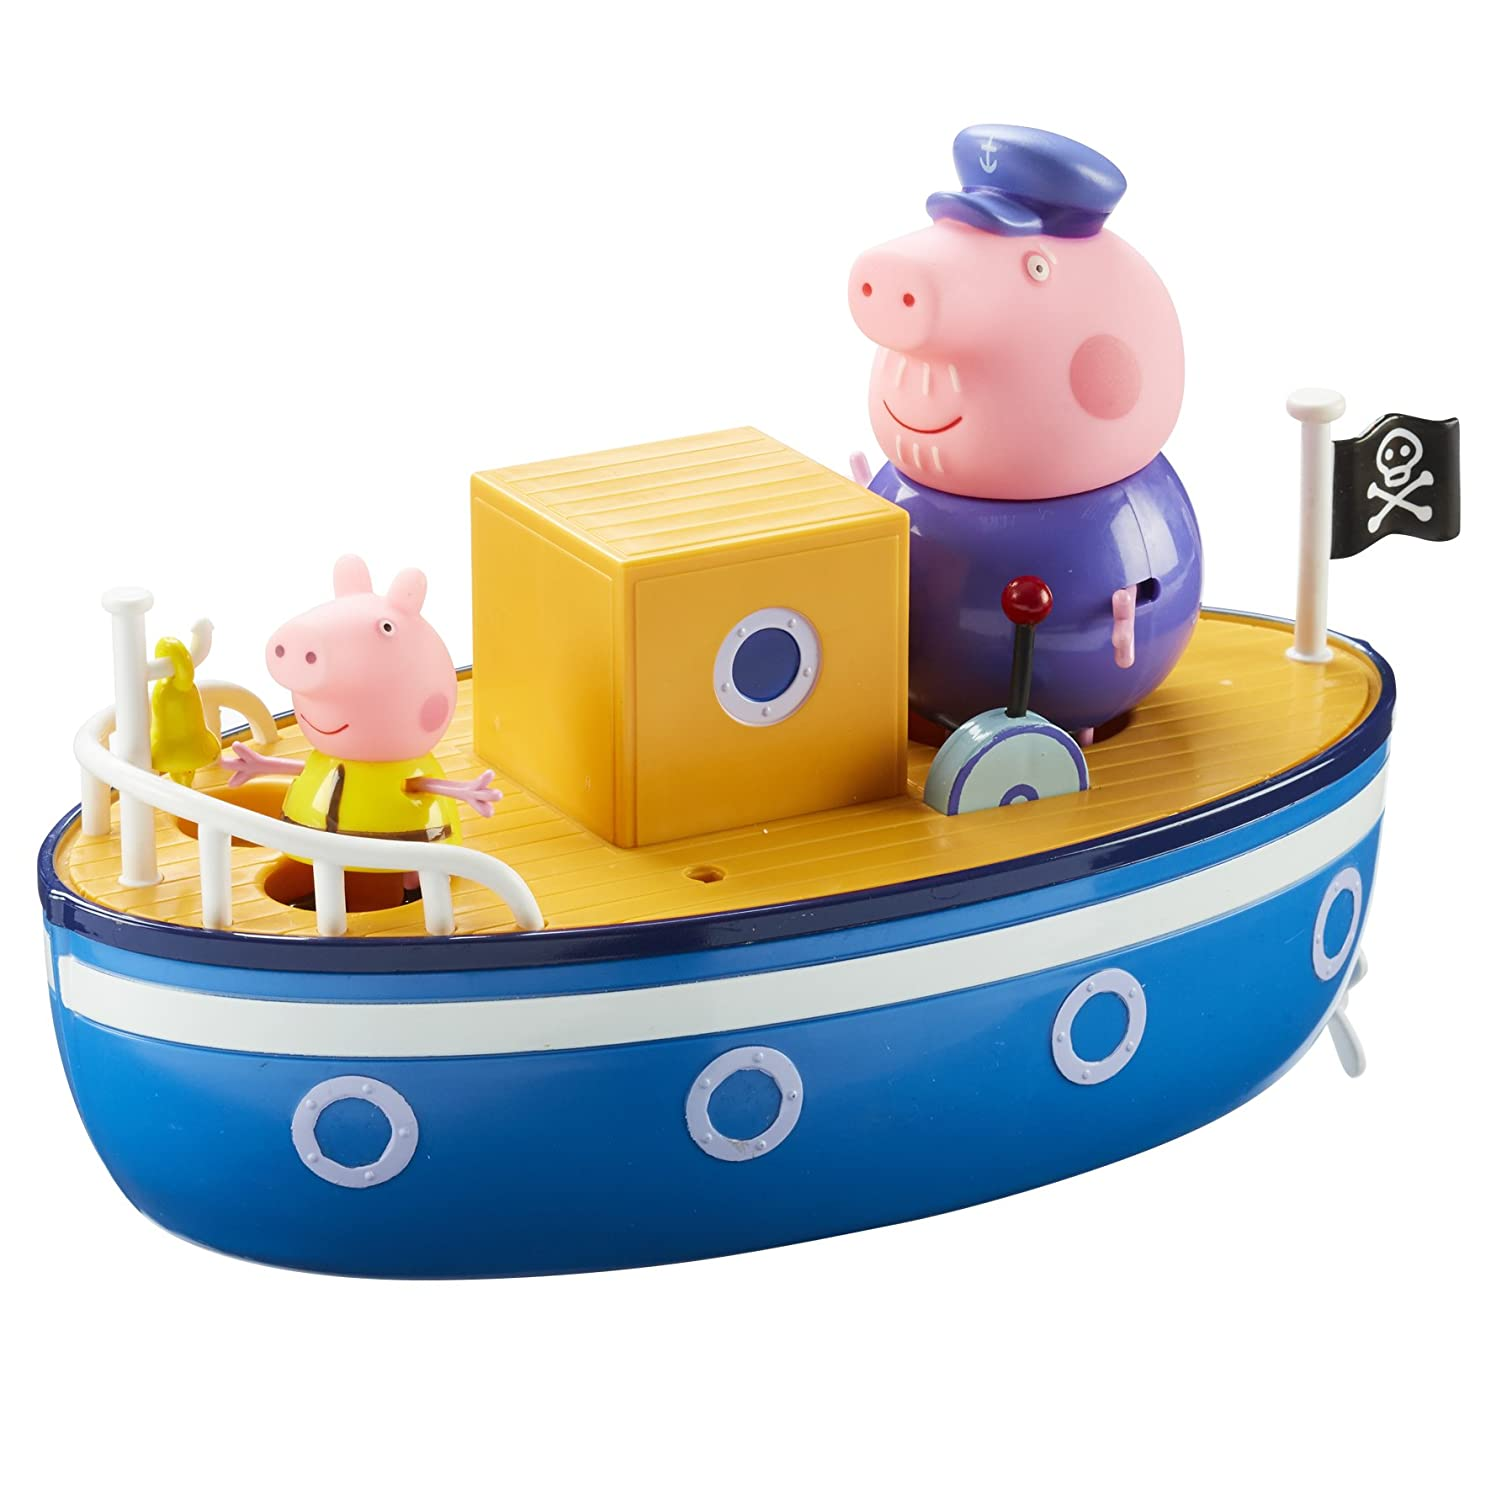 Peppa Pig 05060 Grandpa Pig's Bath Time Boat Character Options